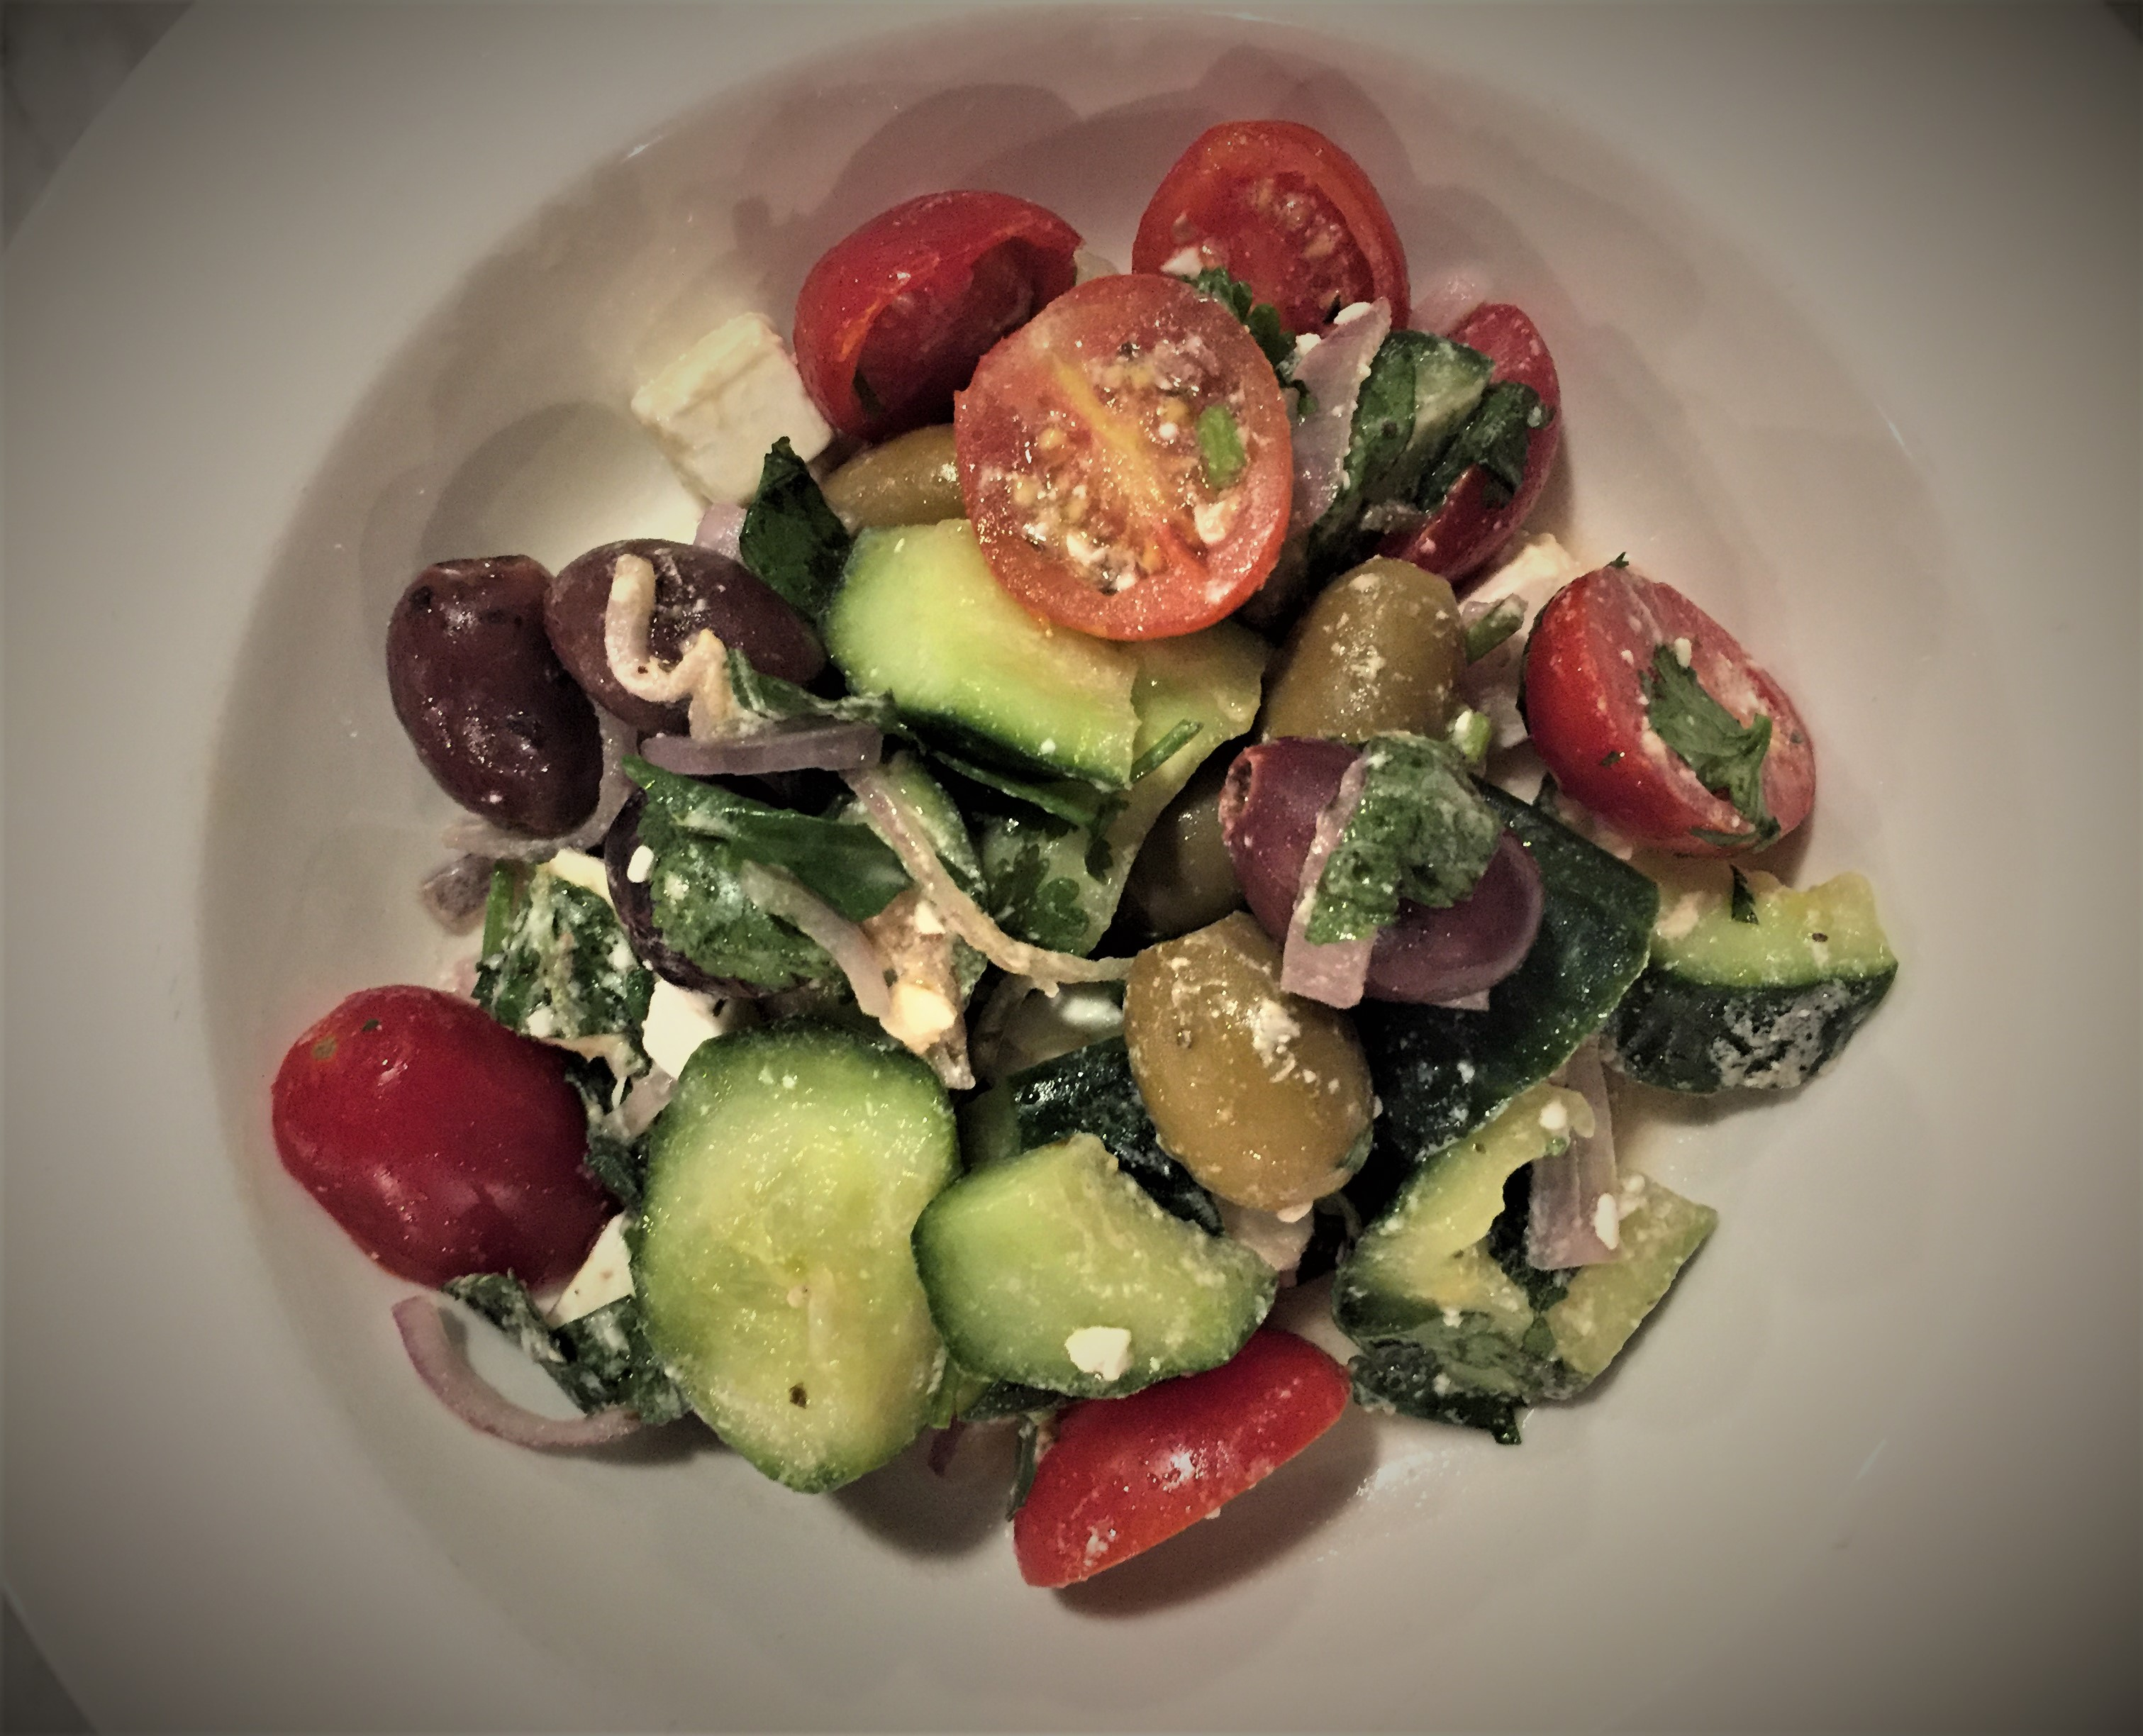 Mahrez's Greek salad at Counter Termini - kenningtonrunoff.com